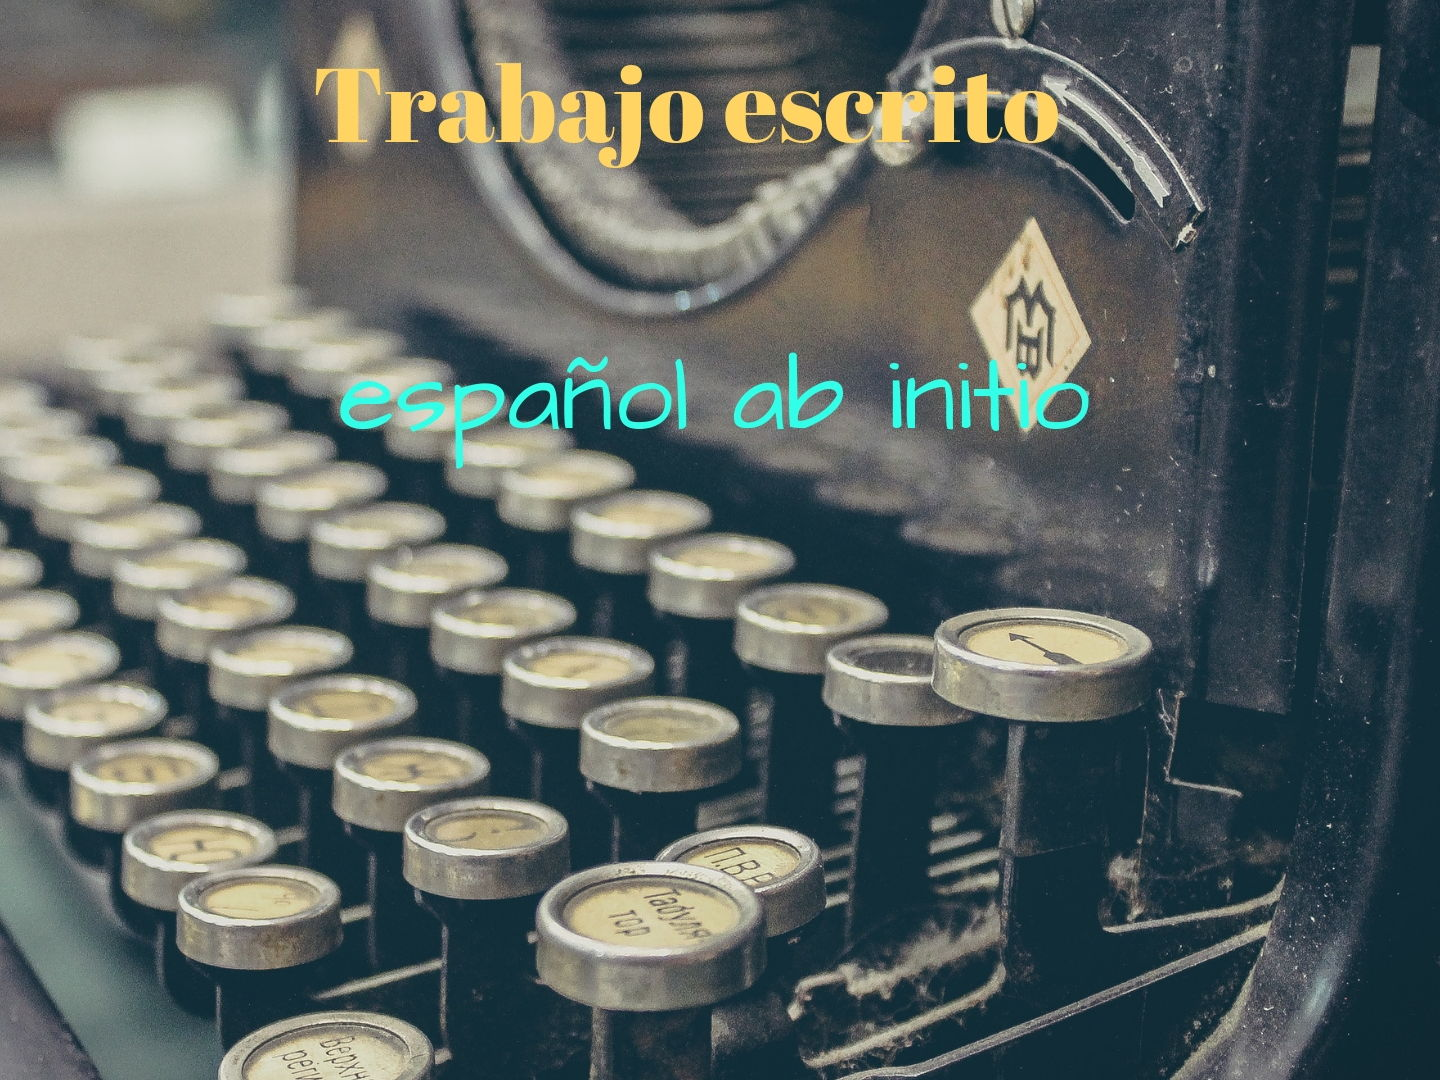 ESPAÑOL AB INITIO TRABAJO ESCRITO. SPANISH AB INITIO WRITTEN ASSIGNMENT